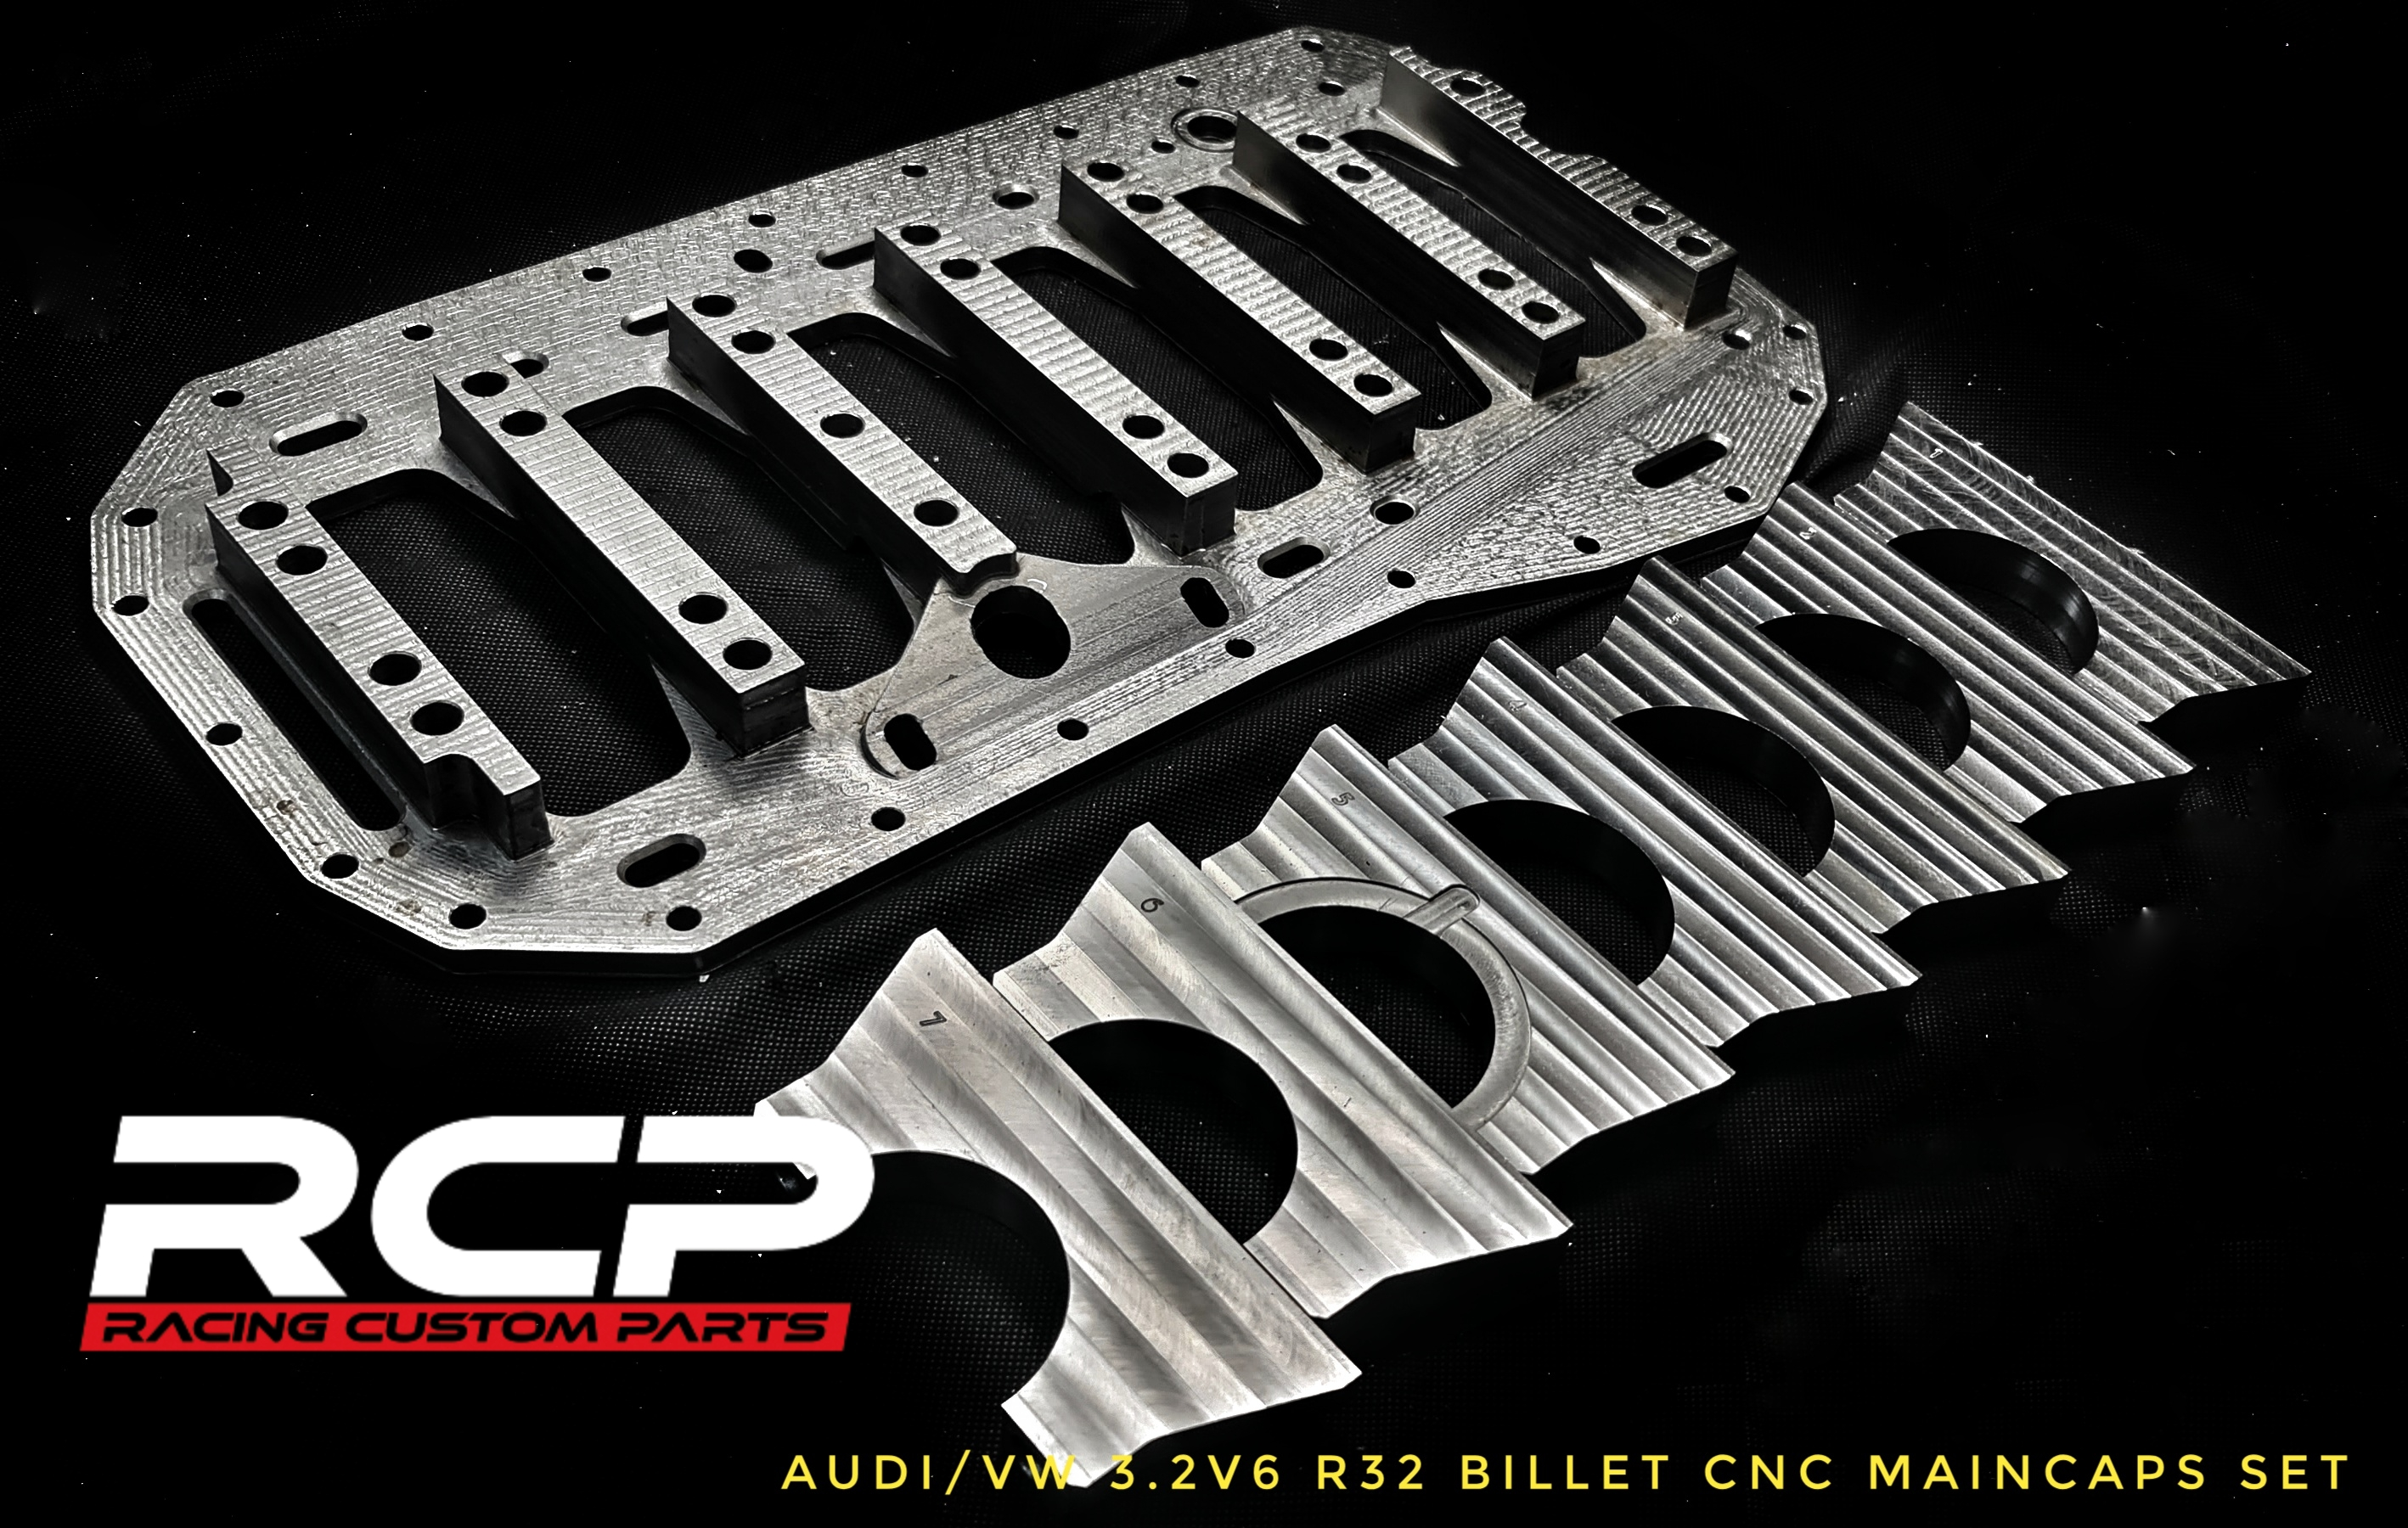 r36 r32 vr6 girdle plate griddle plate maincaps billet cnc machined turbo audi vw 1000hp rcp racing custom parts performance